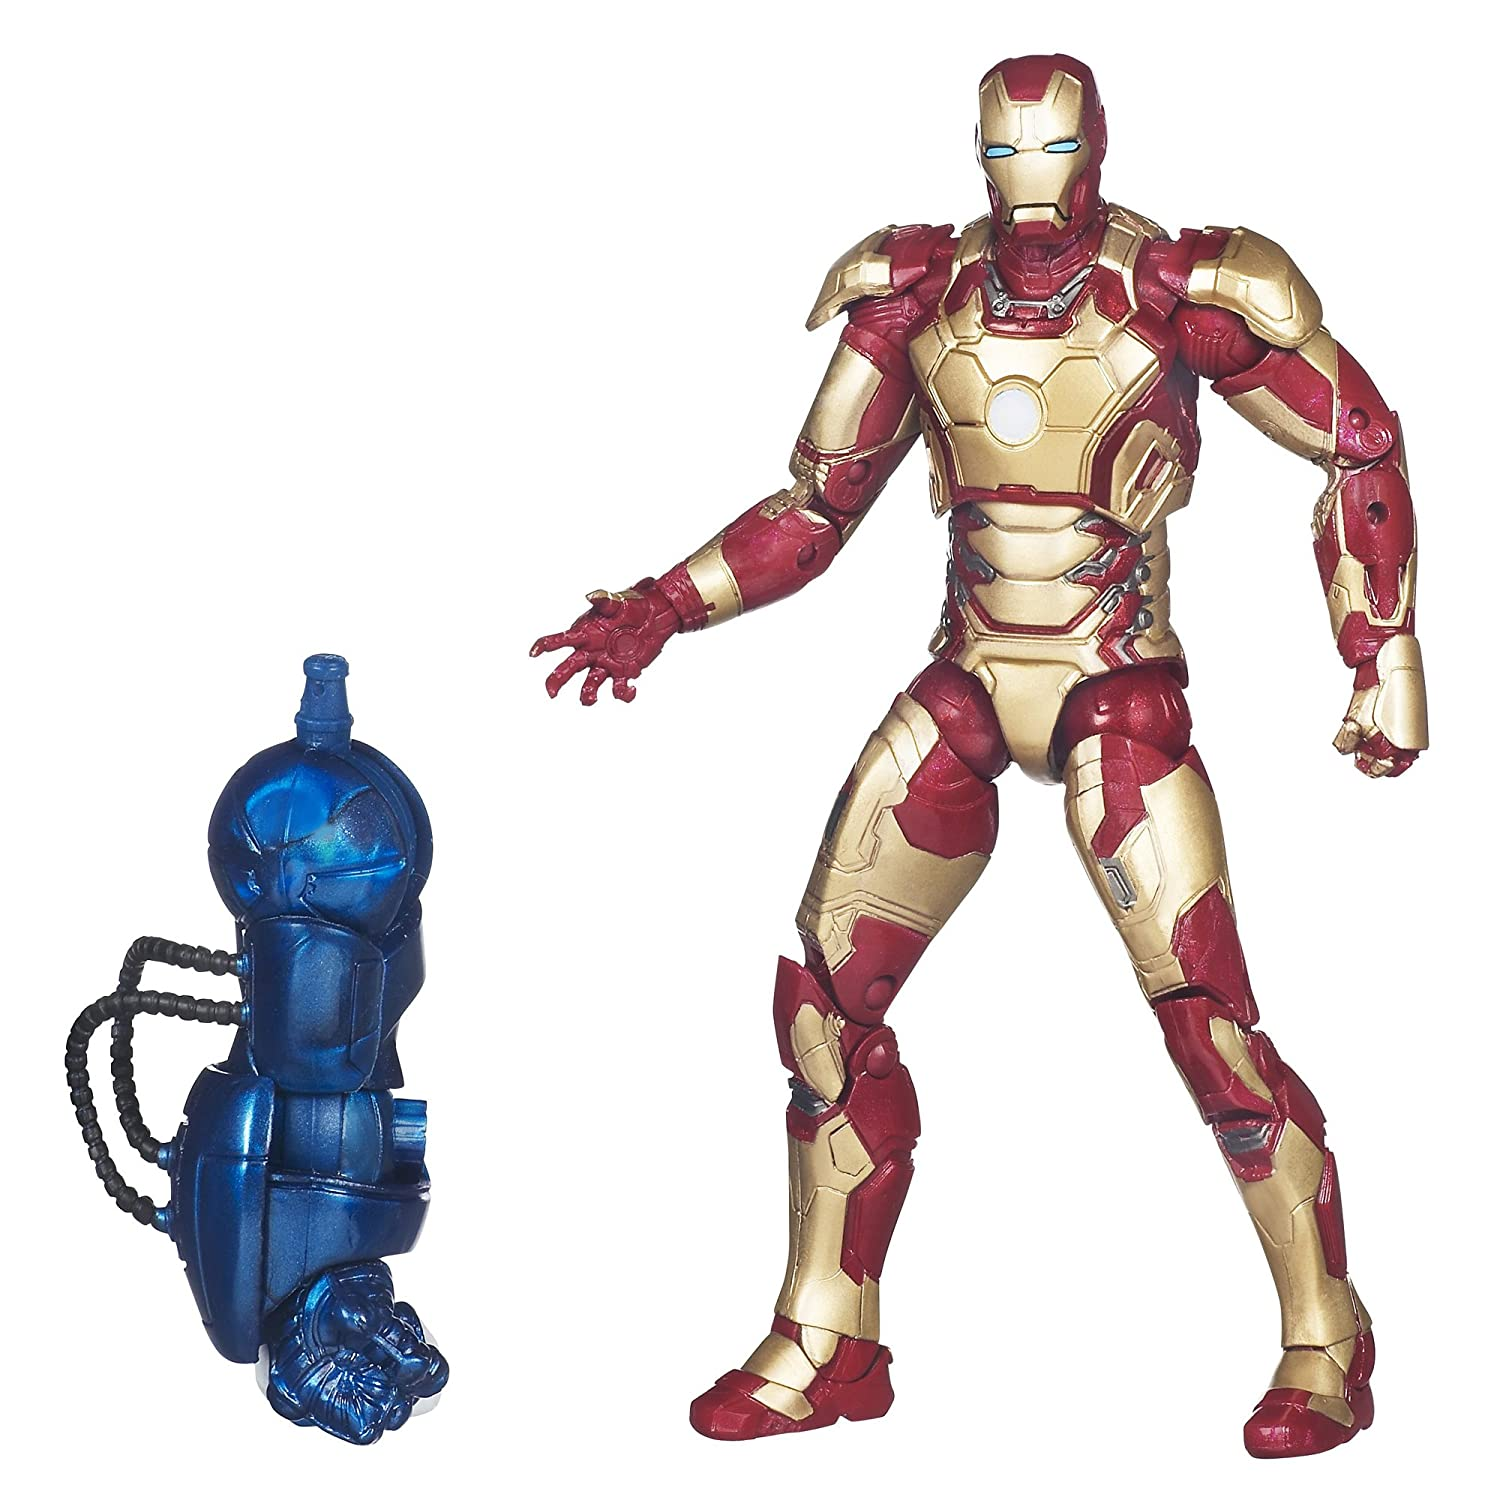 Reducción de precio Iron Man Marvel Legends Action Figure 6 inches / Iron Man Mark 42 (movie version of